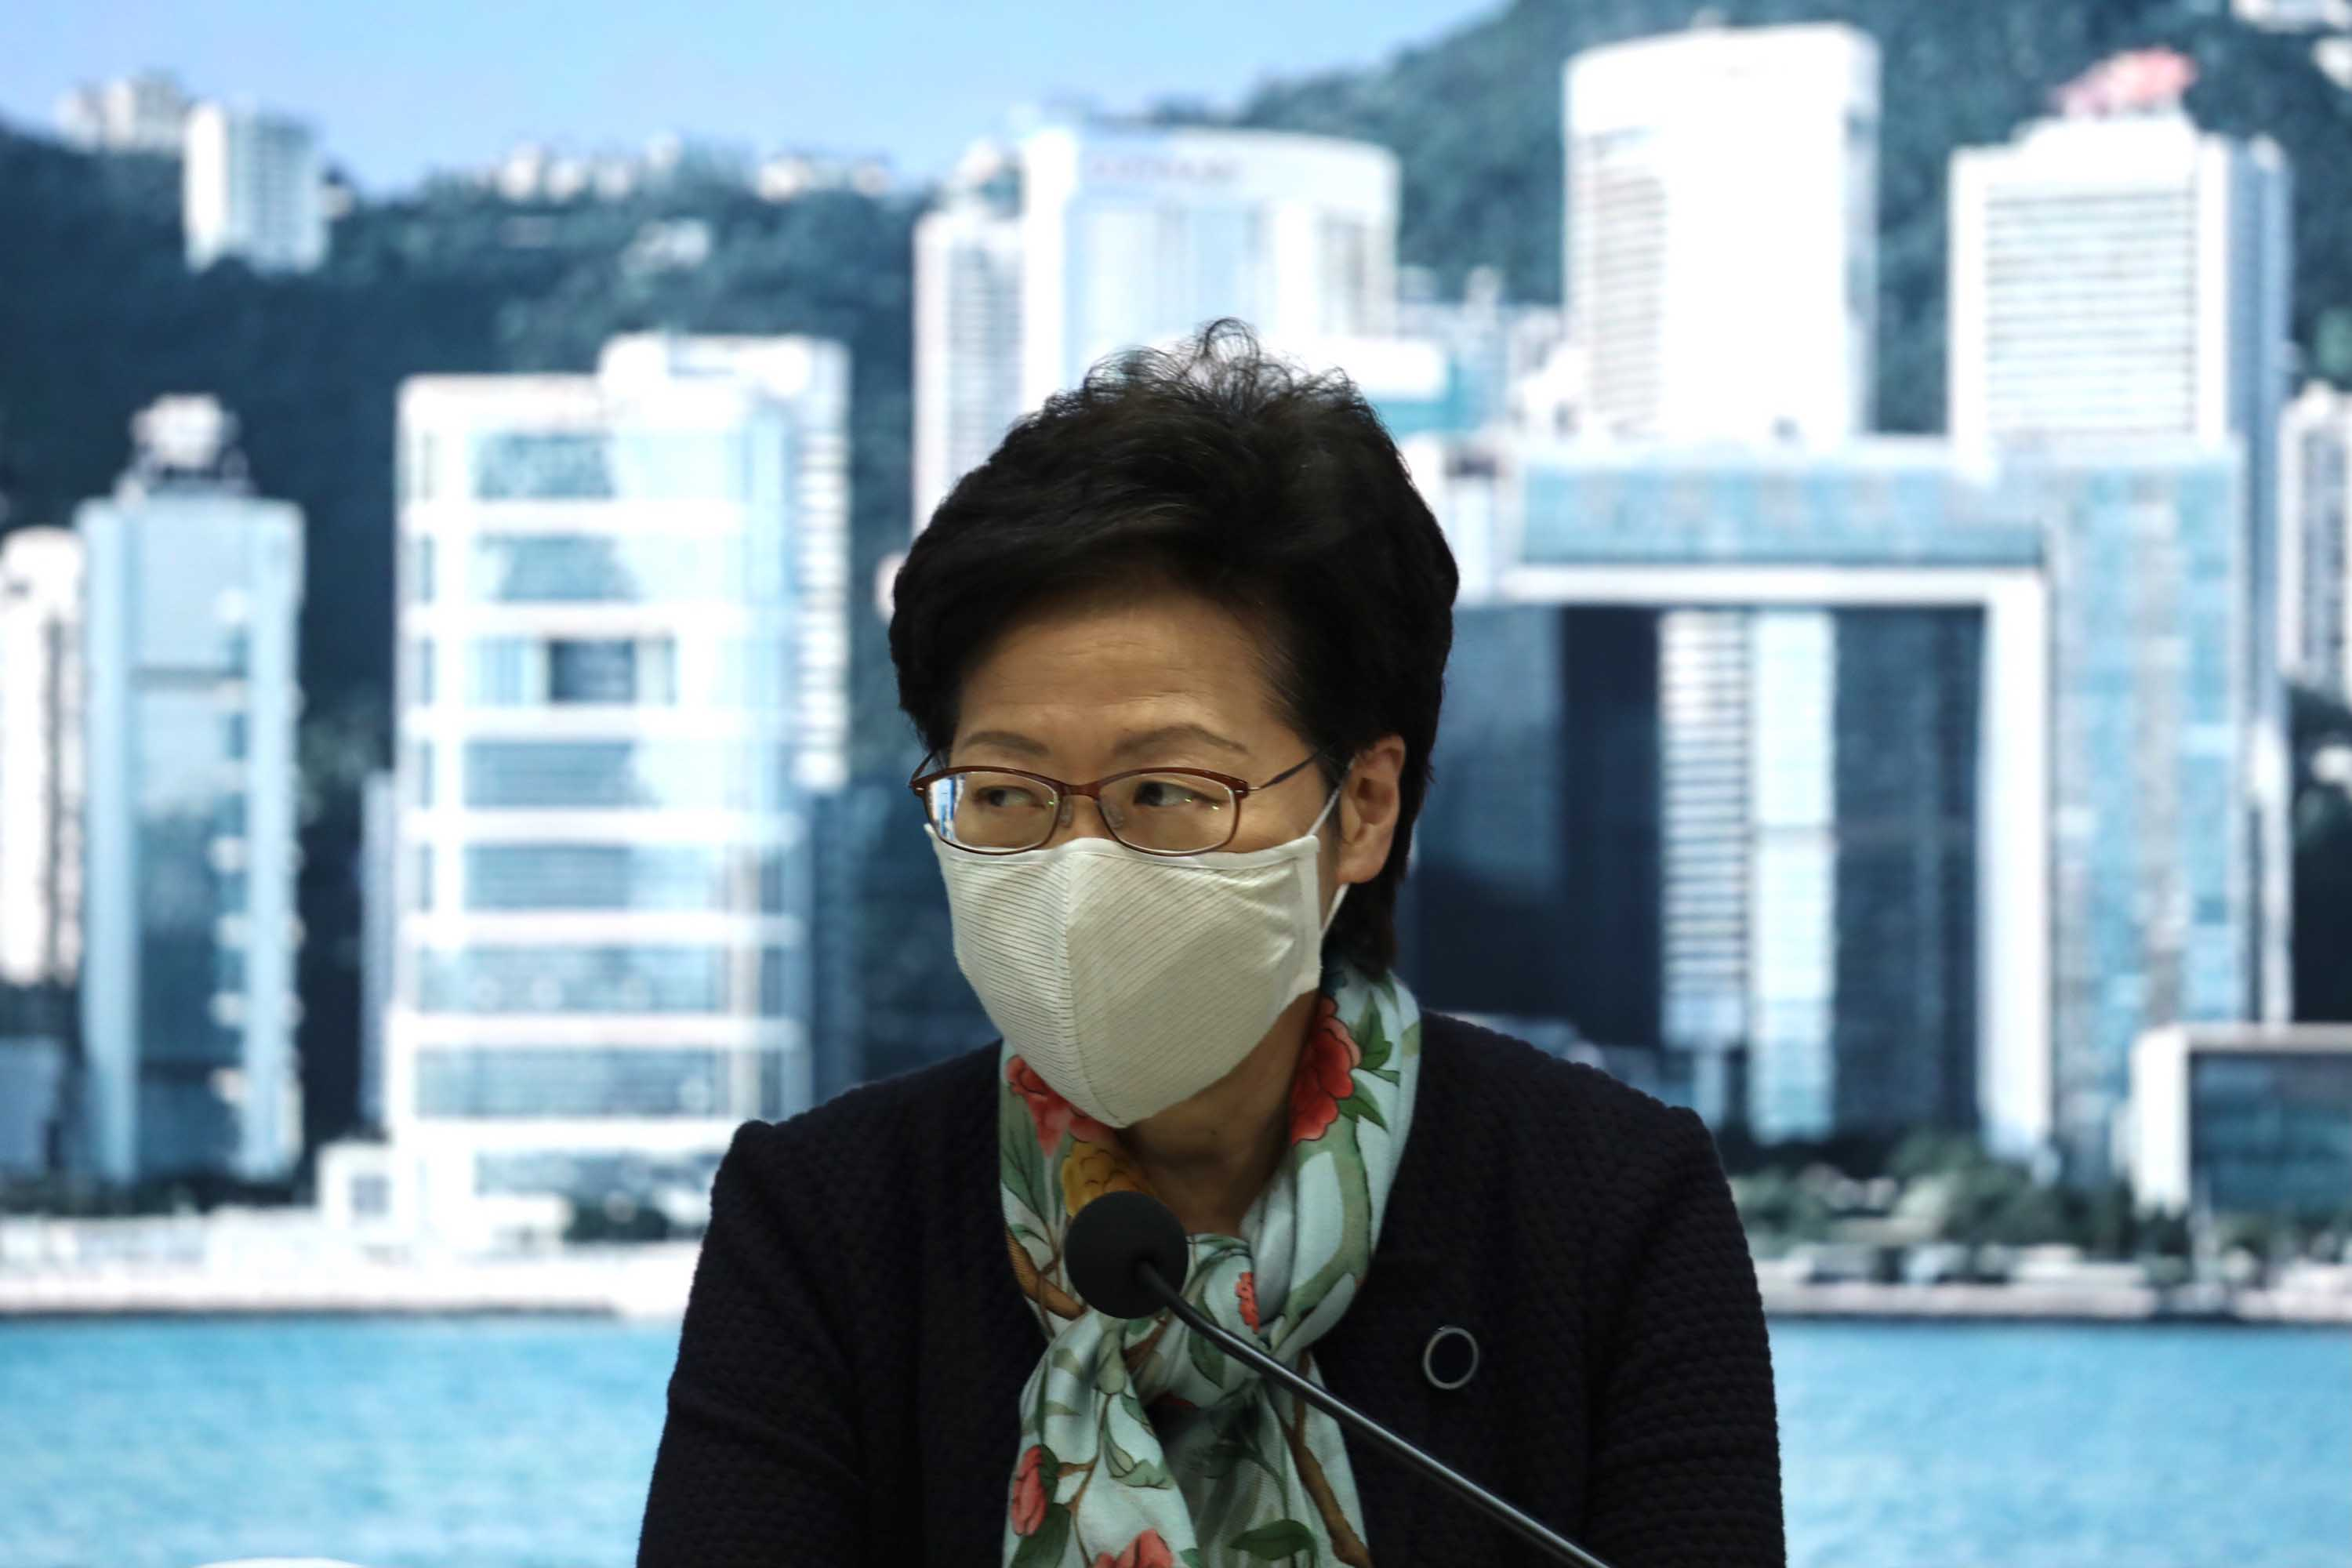 Hong Kong Chief Executive Carrie Lam during a press conference on Covid-19 measures in Hong Kong on Monday, November 30.